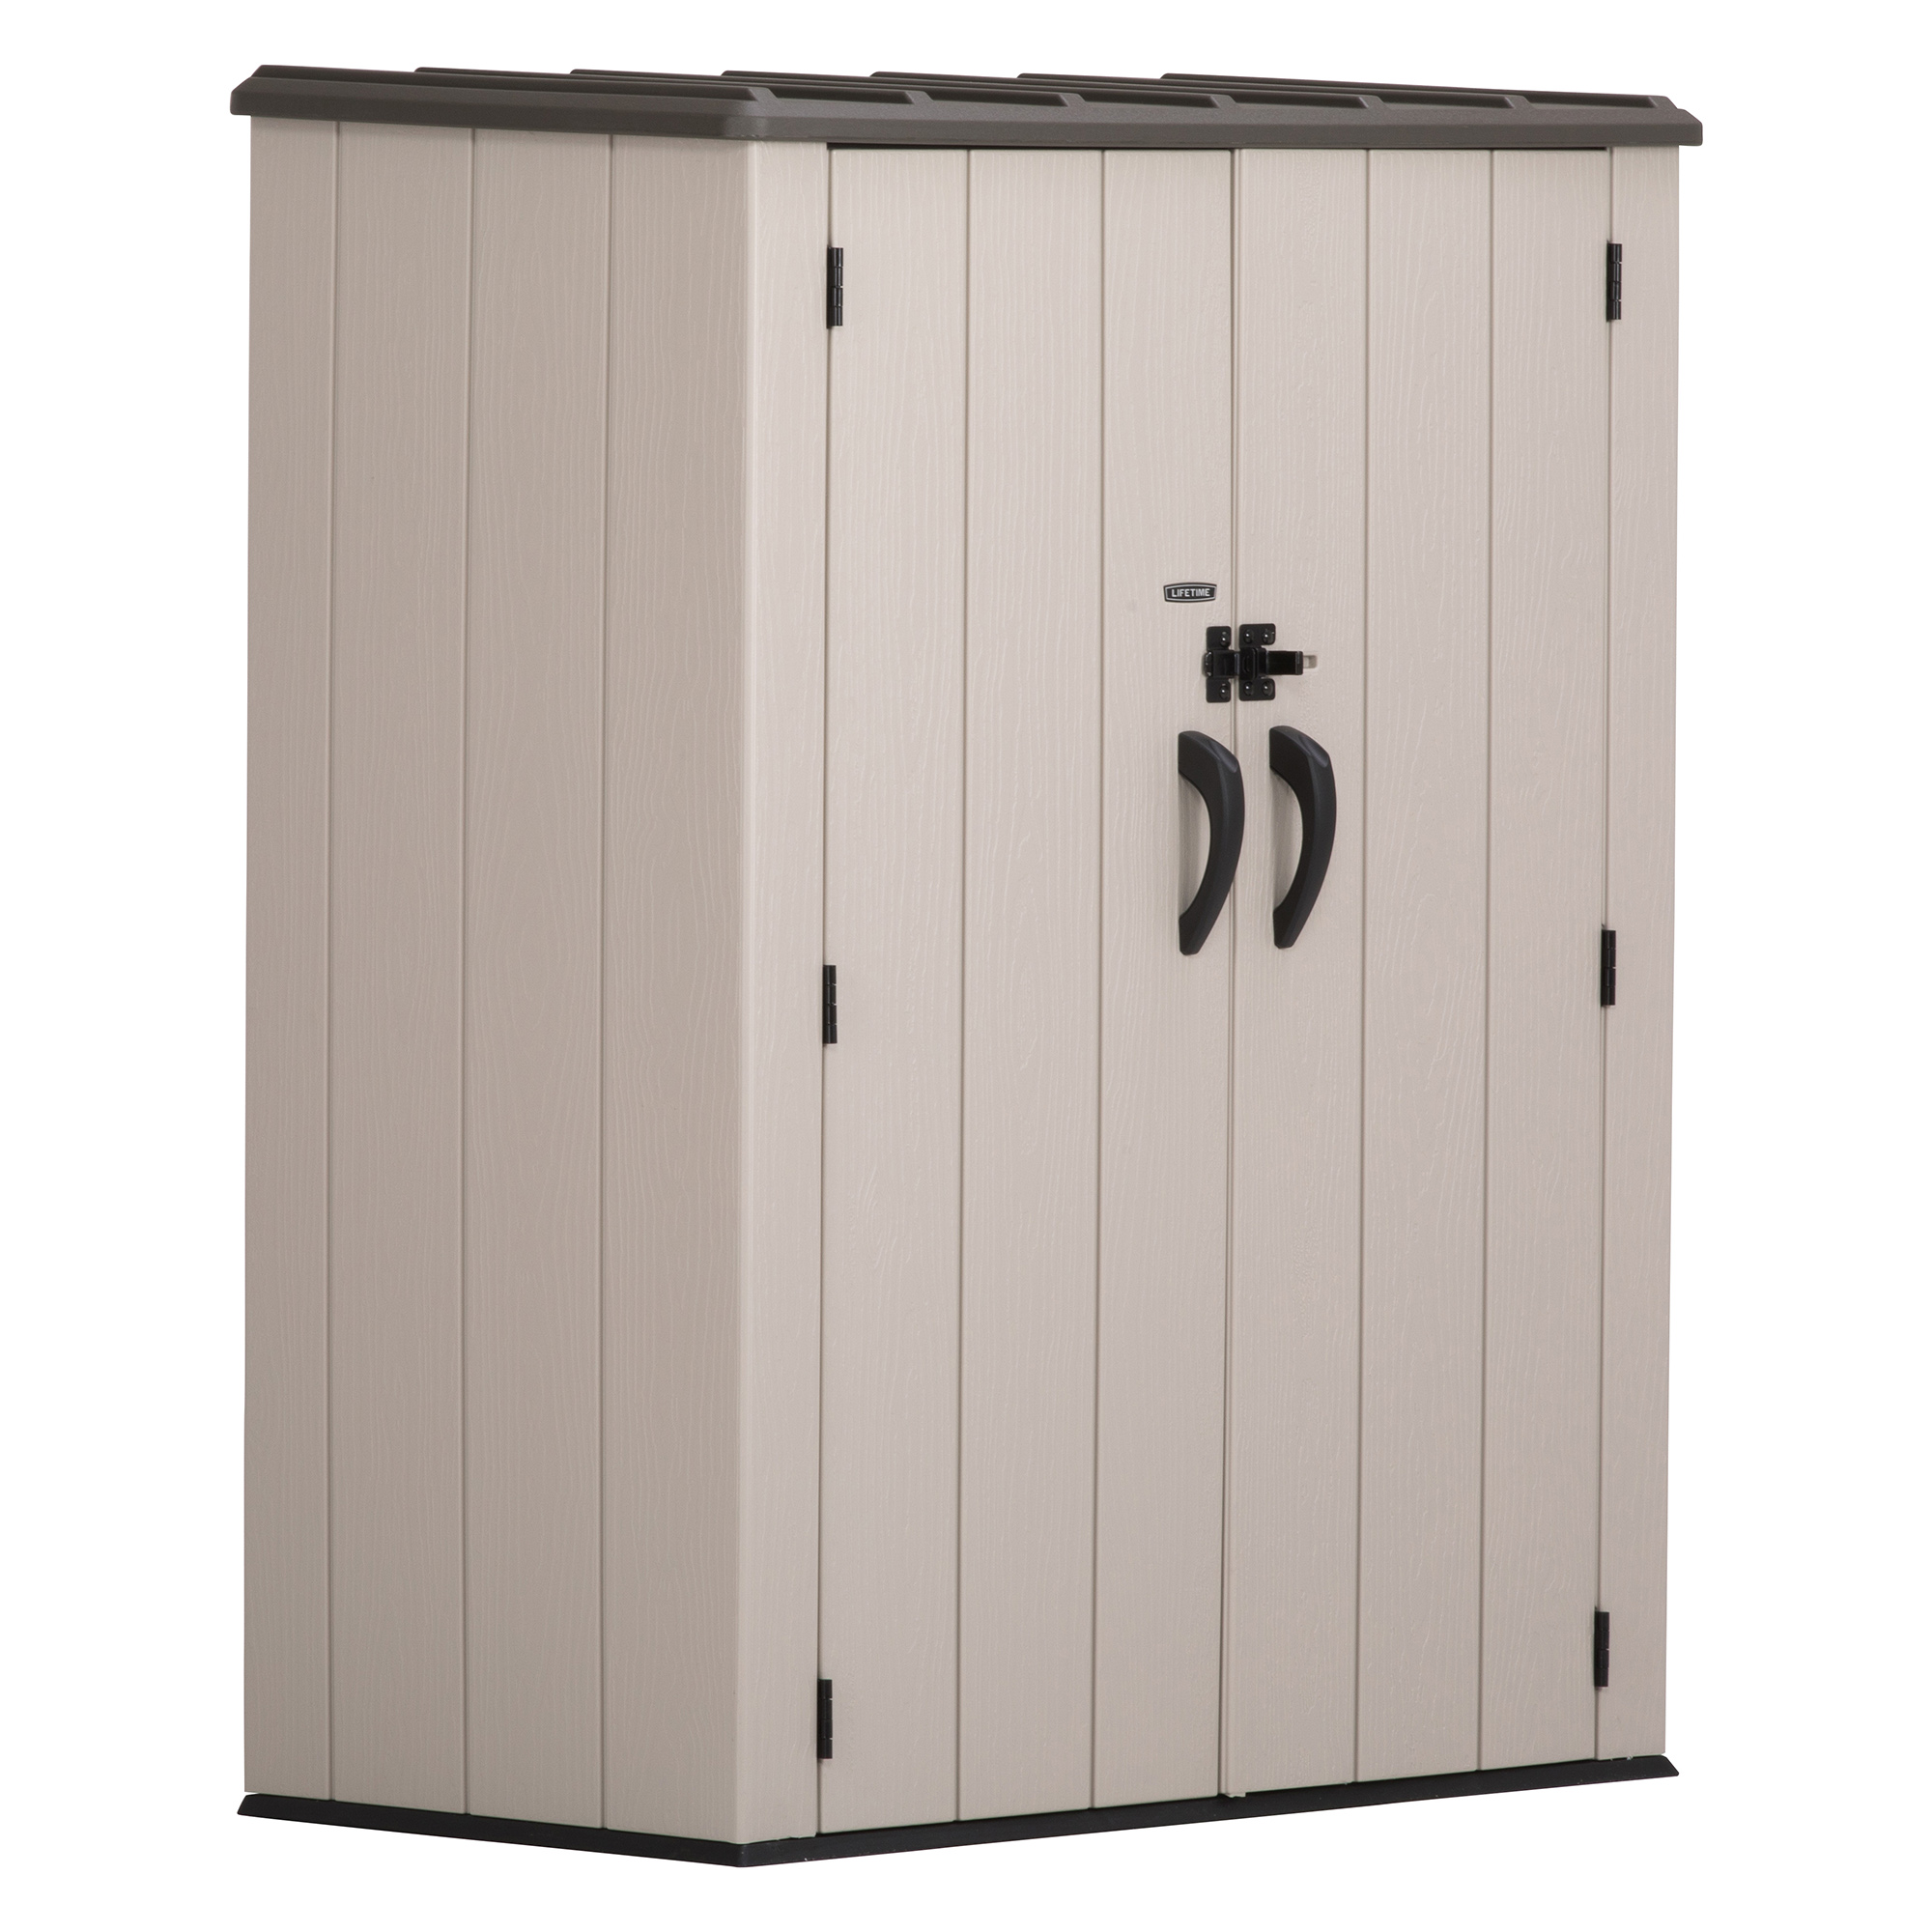 Lifetime Vertical Storage Shed (53 cubic feet), 60280